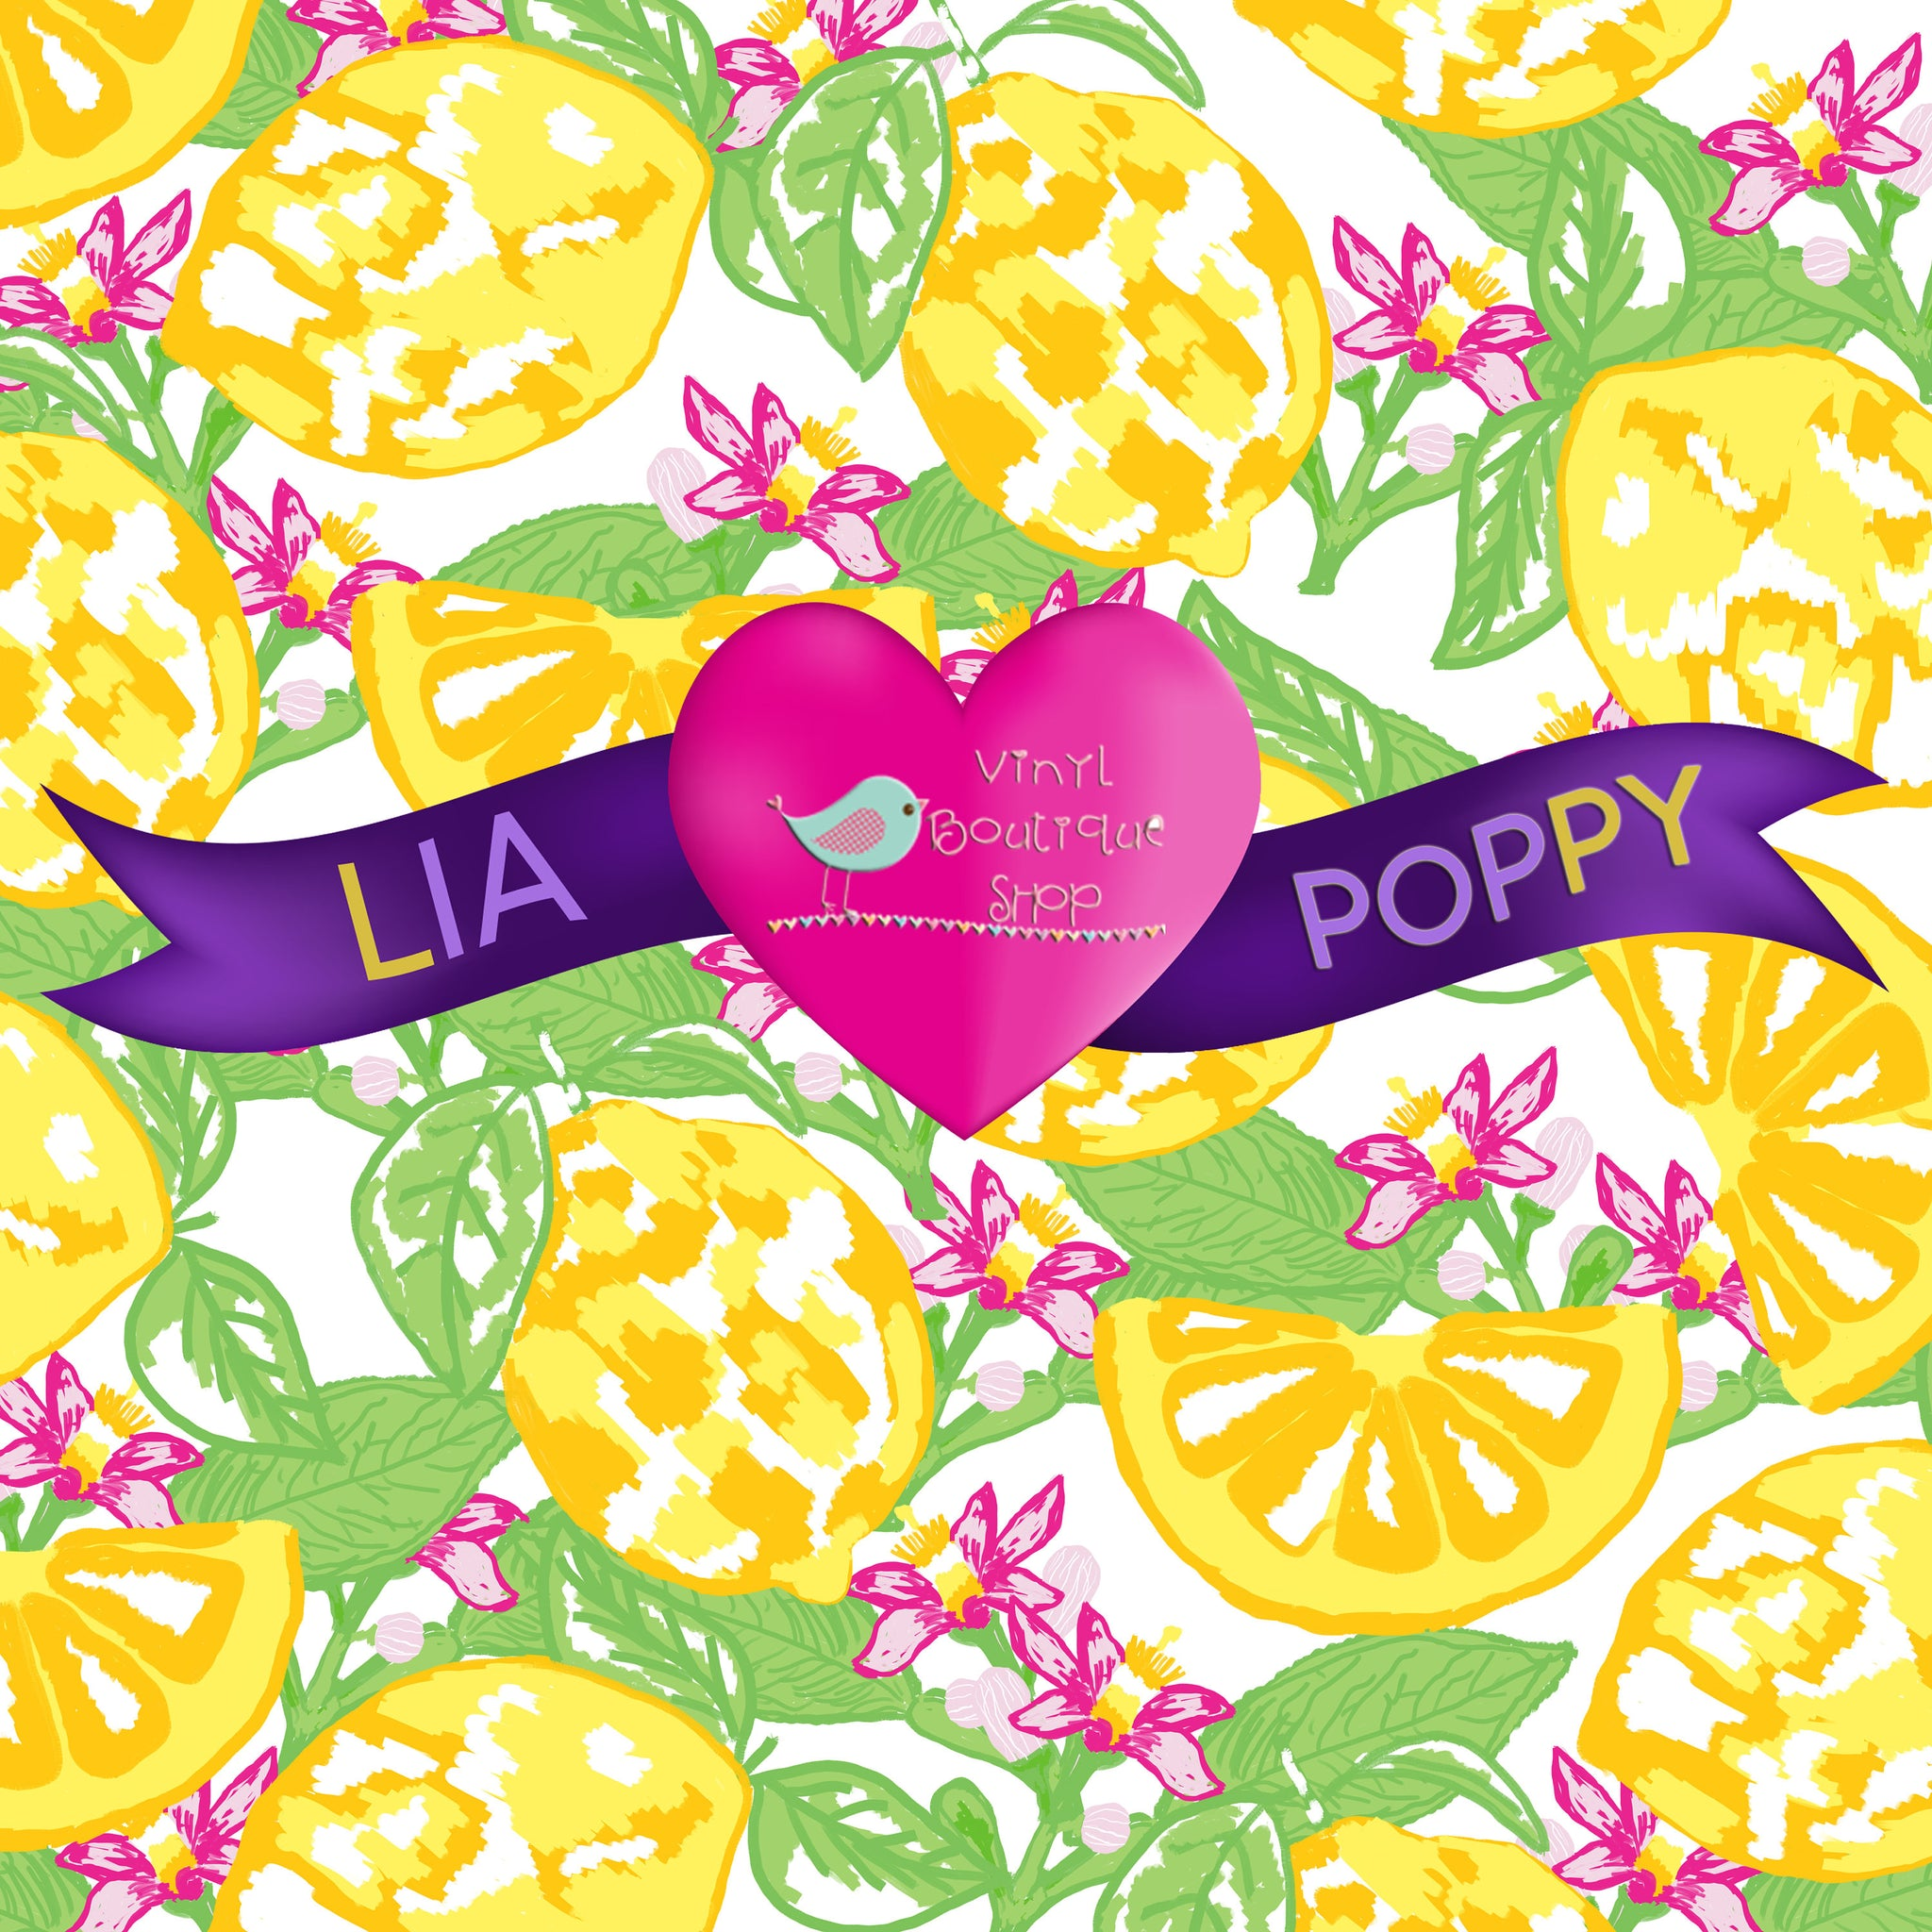 Fruit Lia Poppy Vinyl Sheet LPY-53 - Vinyl Boutique Shop